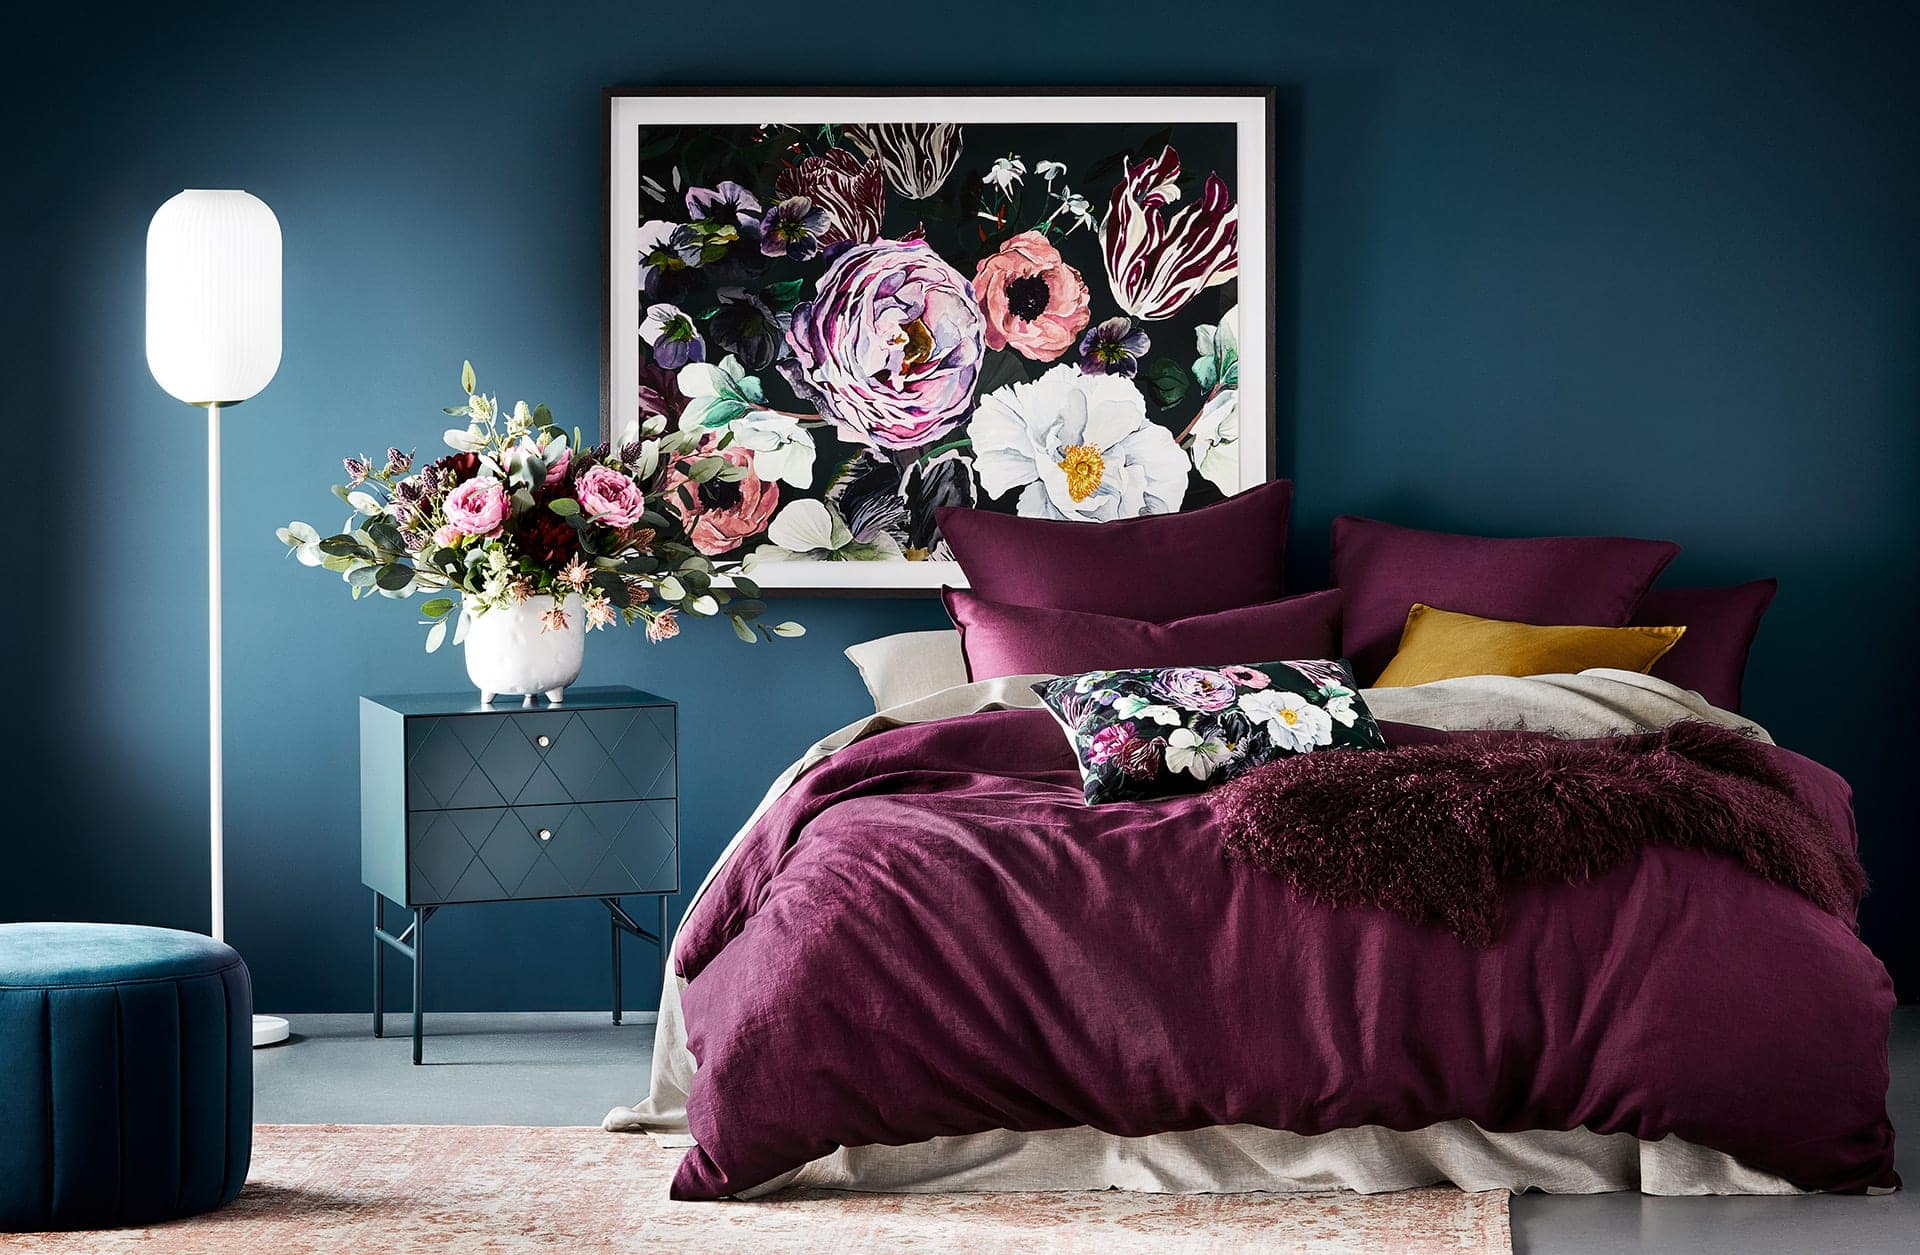 adairs purple bedspread in dark teal bedroom romance interior design trend